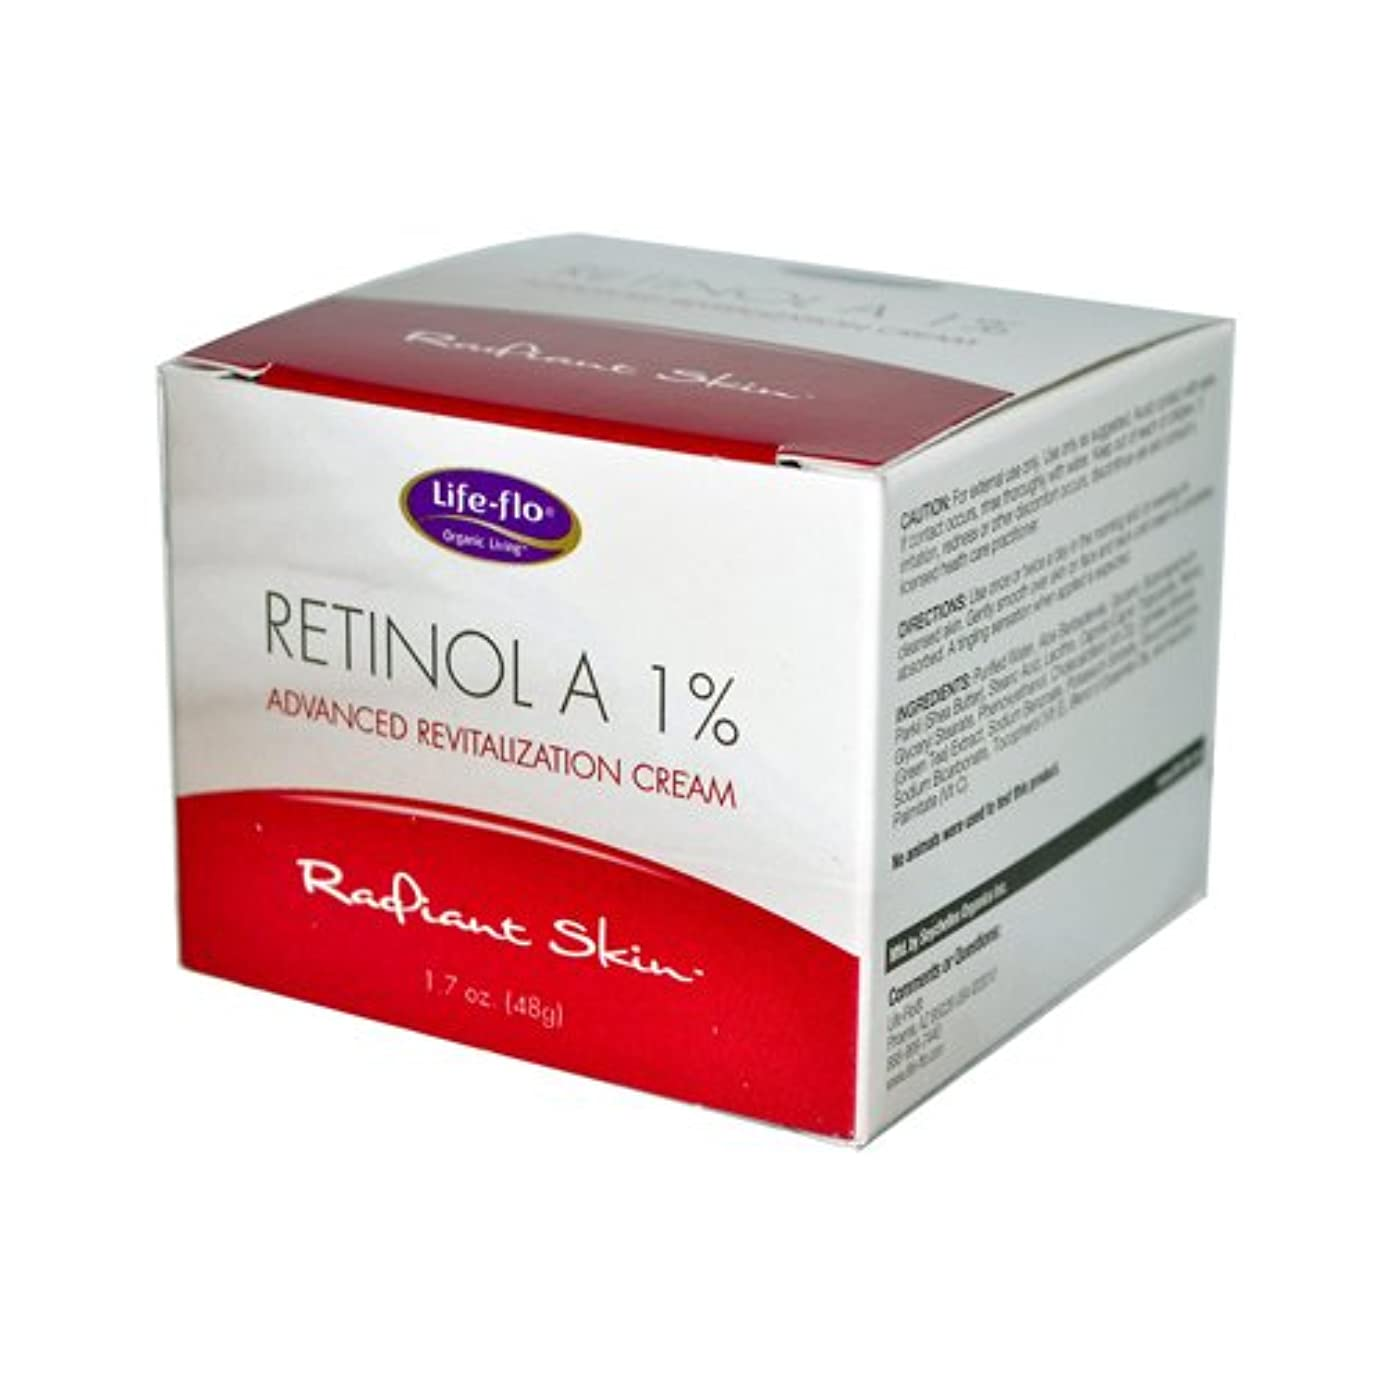 実験をする力学セグメント海外直送品 Life-Flo Retinol A 1% Advanced Revitalization Cream, 1.7 oz